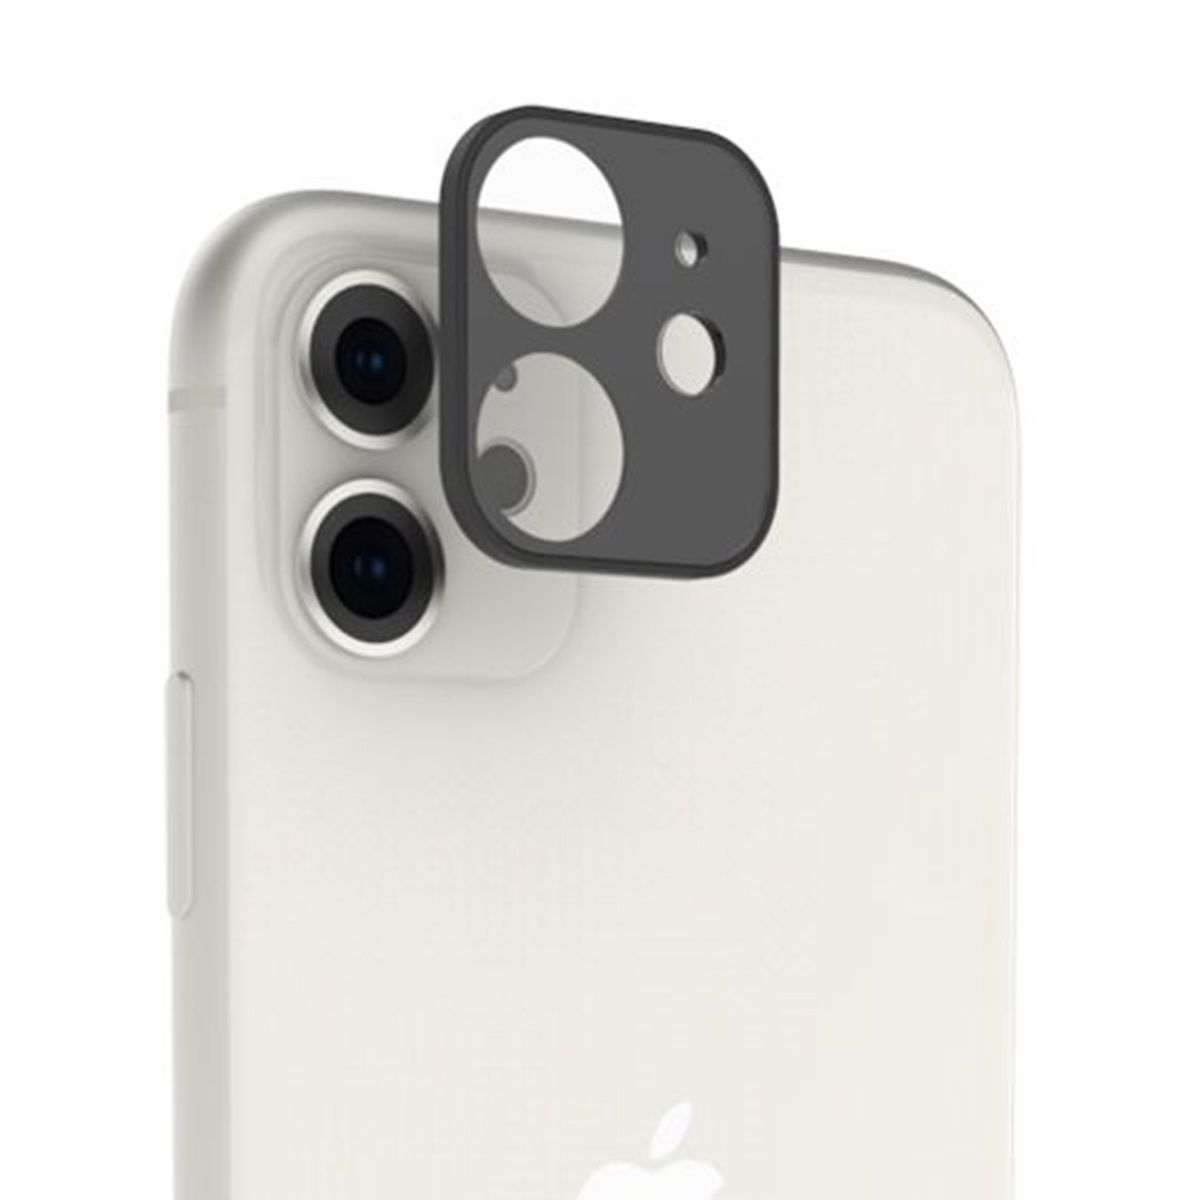 Apple iPhone 11 Glass Camera Lens Protector (No Alignment Tray)